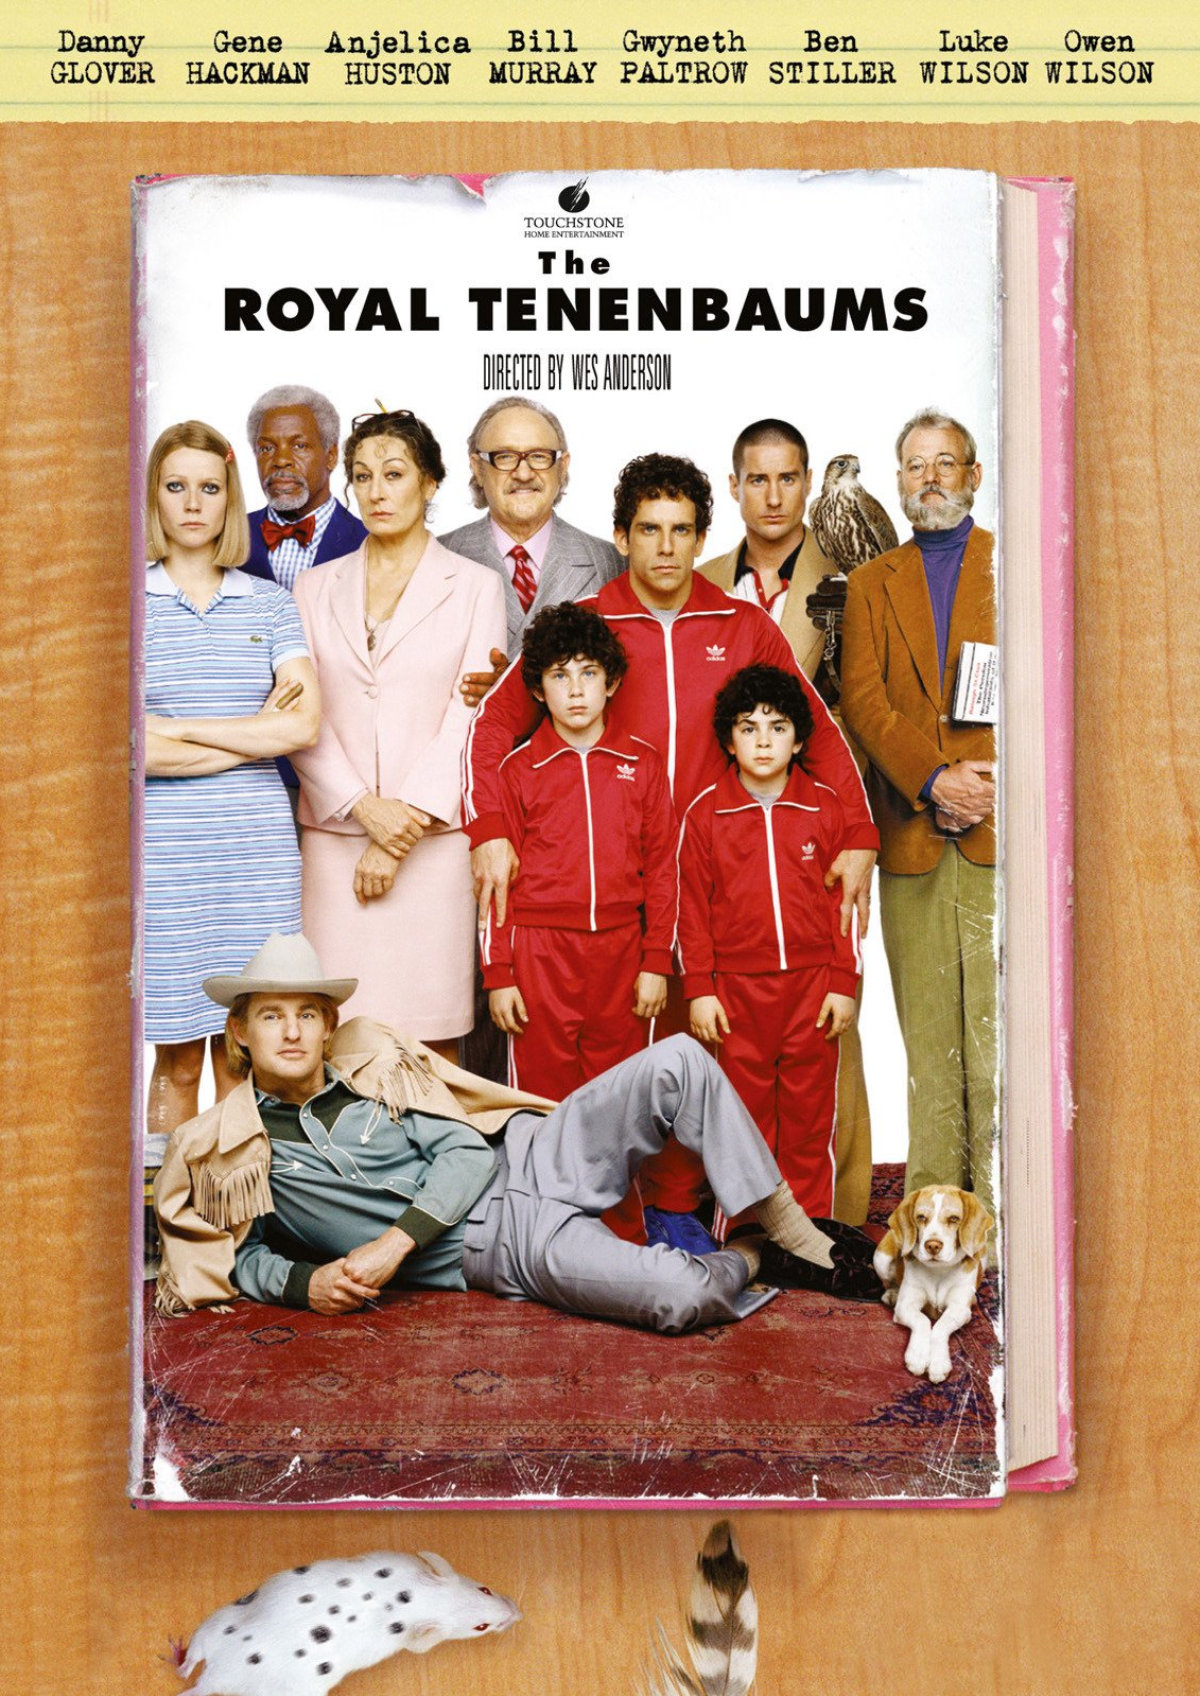 'The Royal Tenenbaums' movie poster